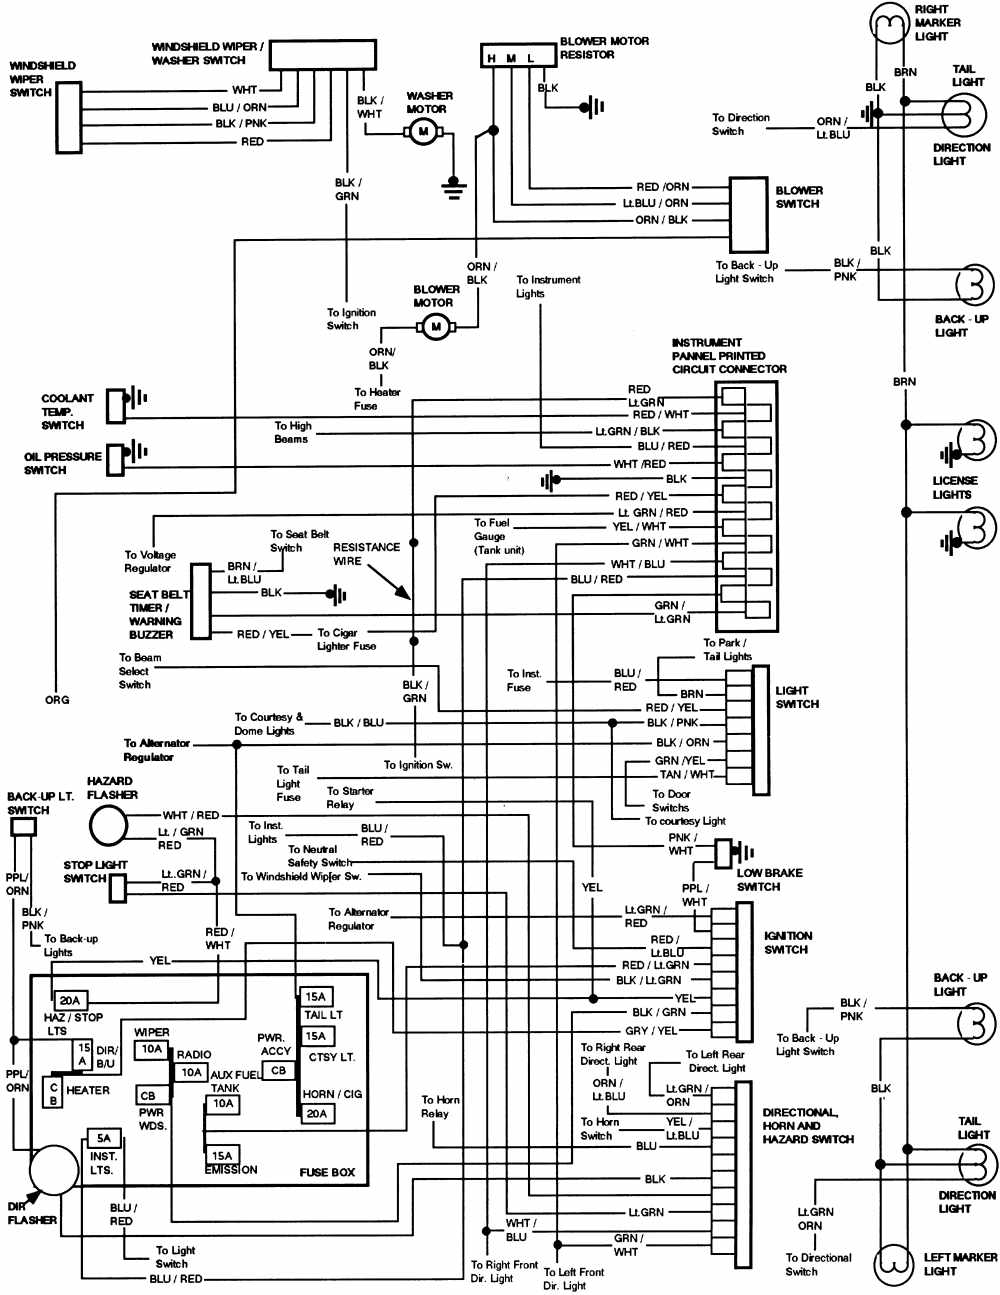 schematic wiring diagram 15 amp plug